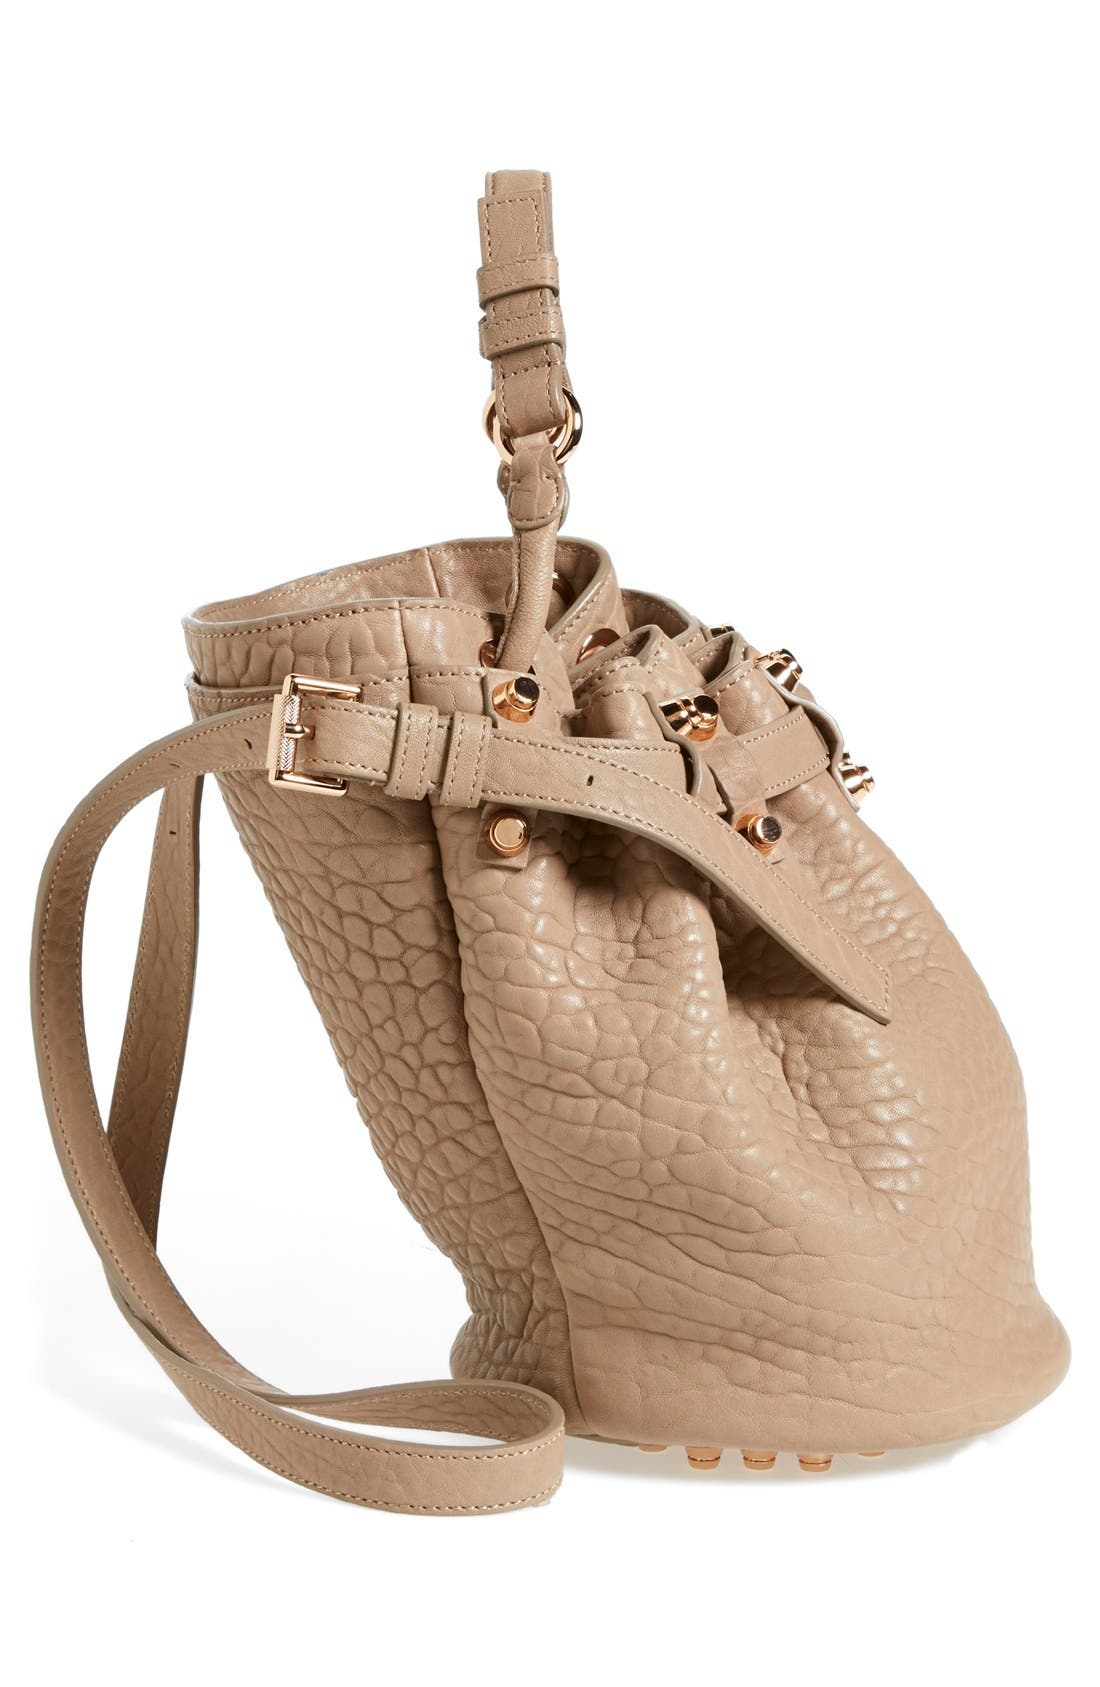 'Small Diego - Rose Gold' Leather Bucket Bag,                             Alternate thumbnail 3, color,                             250